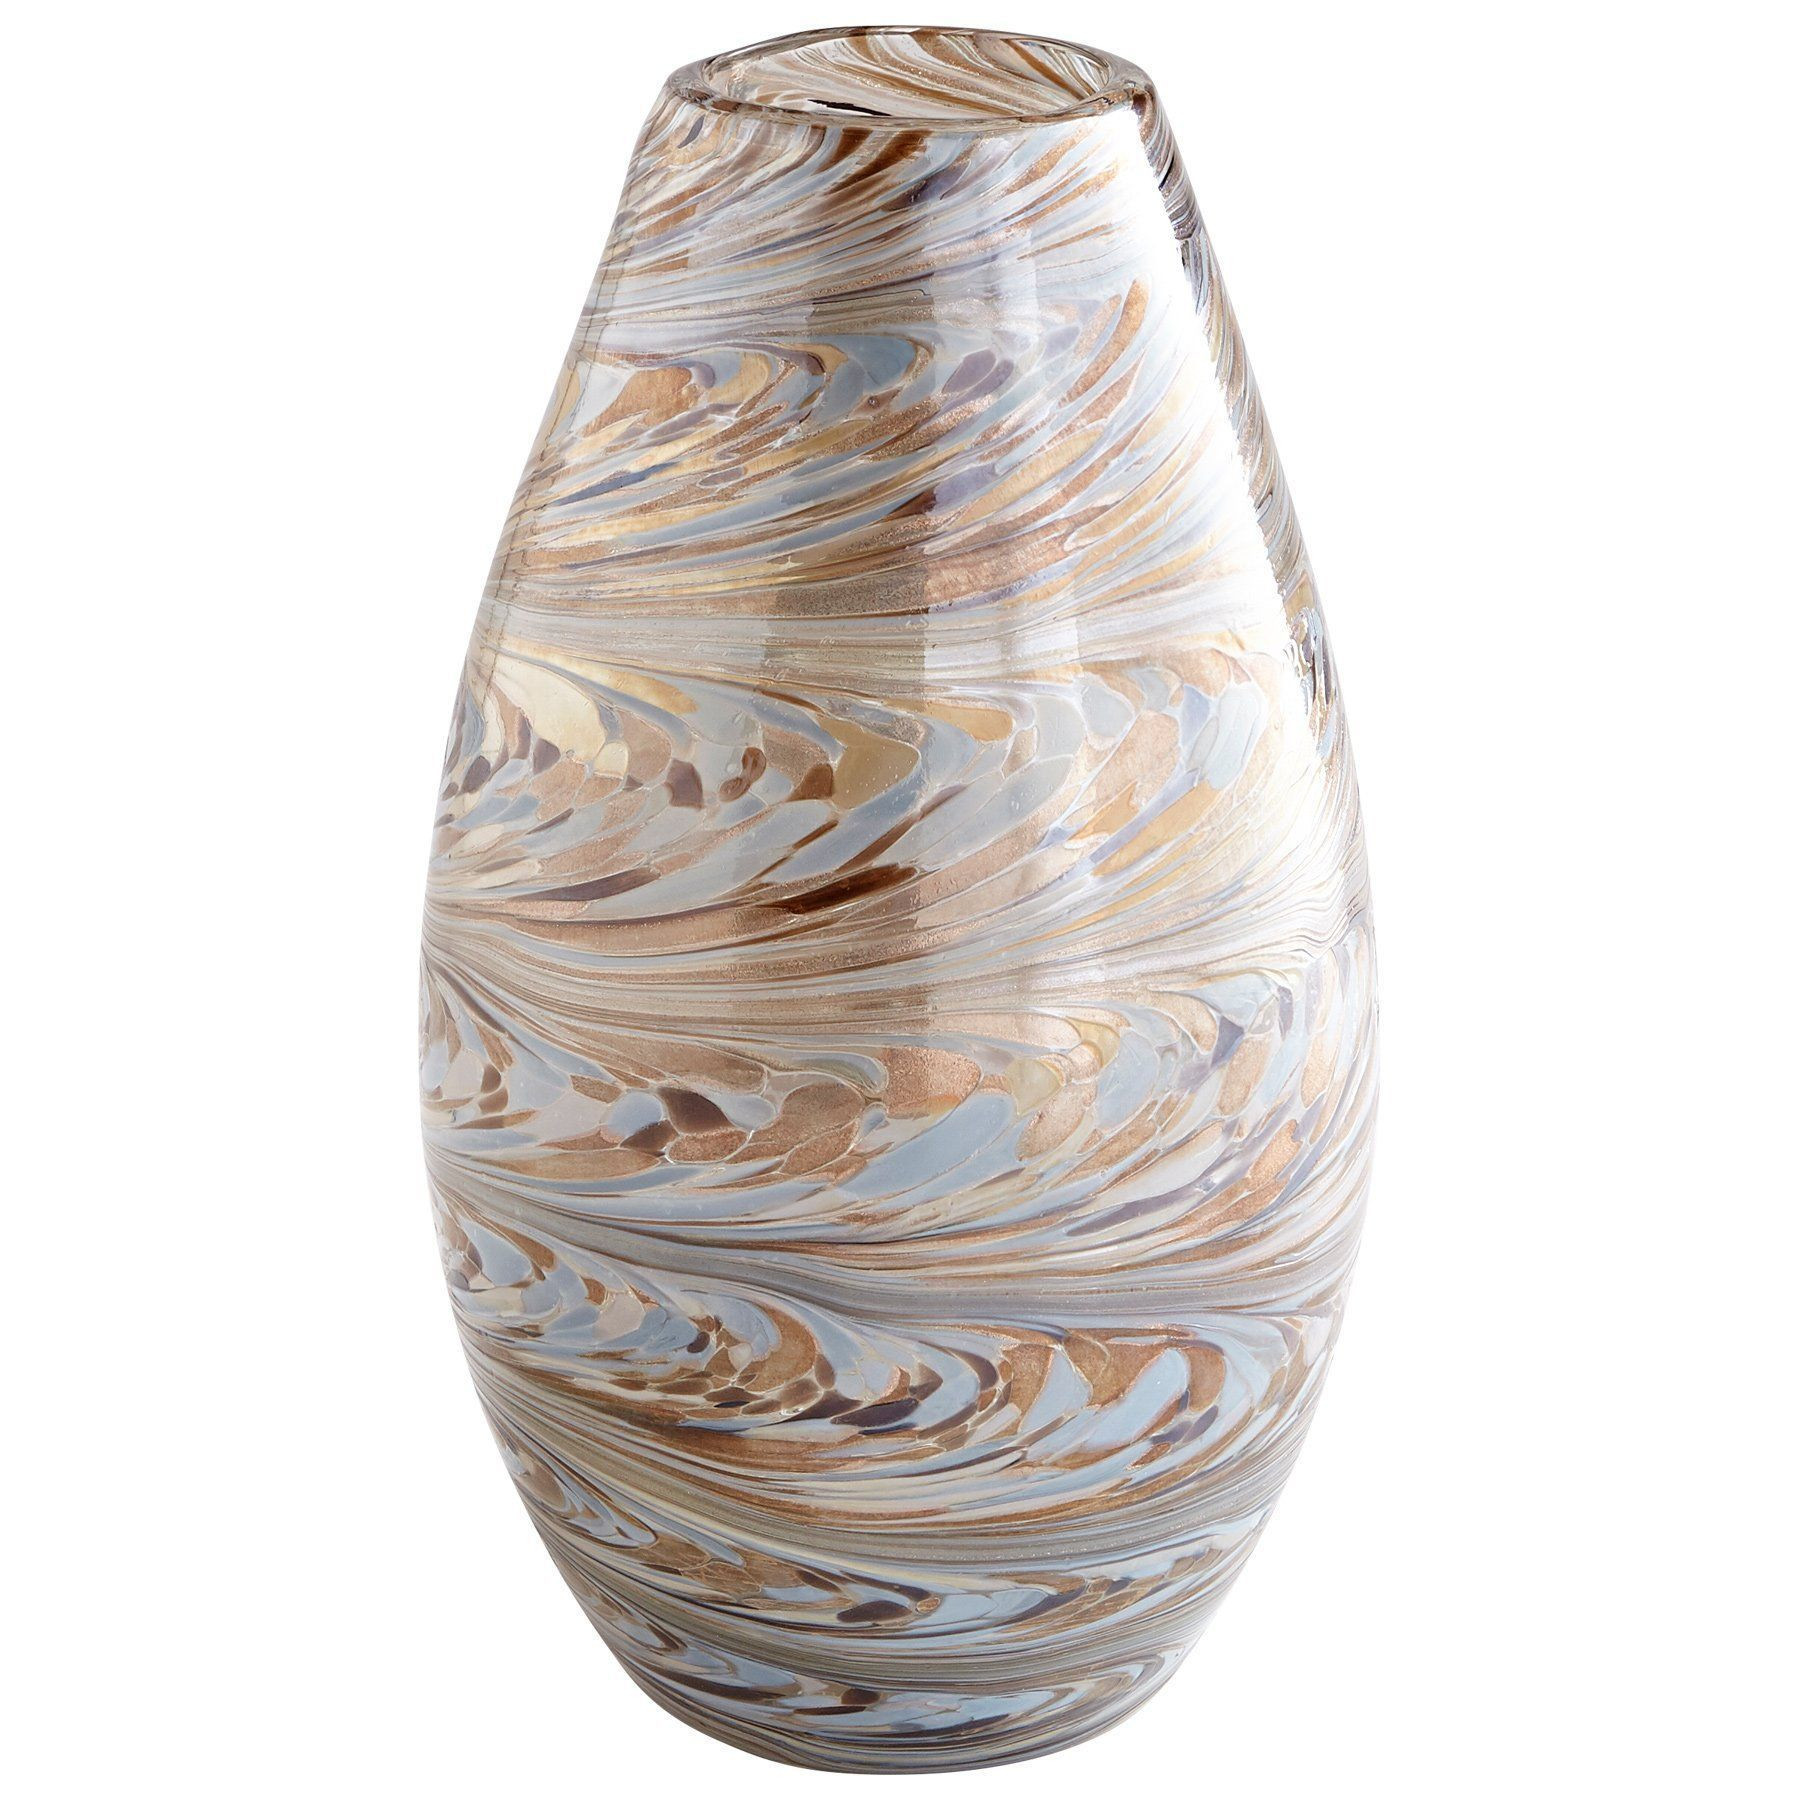 20 Unique Rose Gold Cylinder Vase 2021 free download rose gold cylinder vase of 44 gold and silver vase the weekly world inside caravelas small gold silver metallic sand swirl art glass vase by